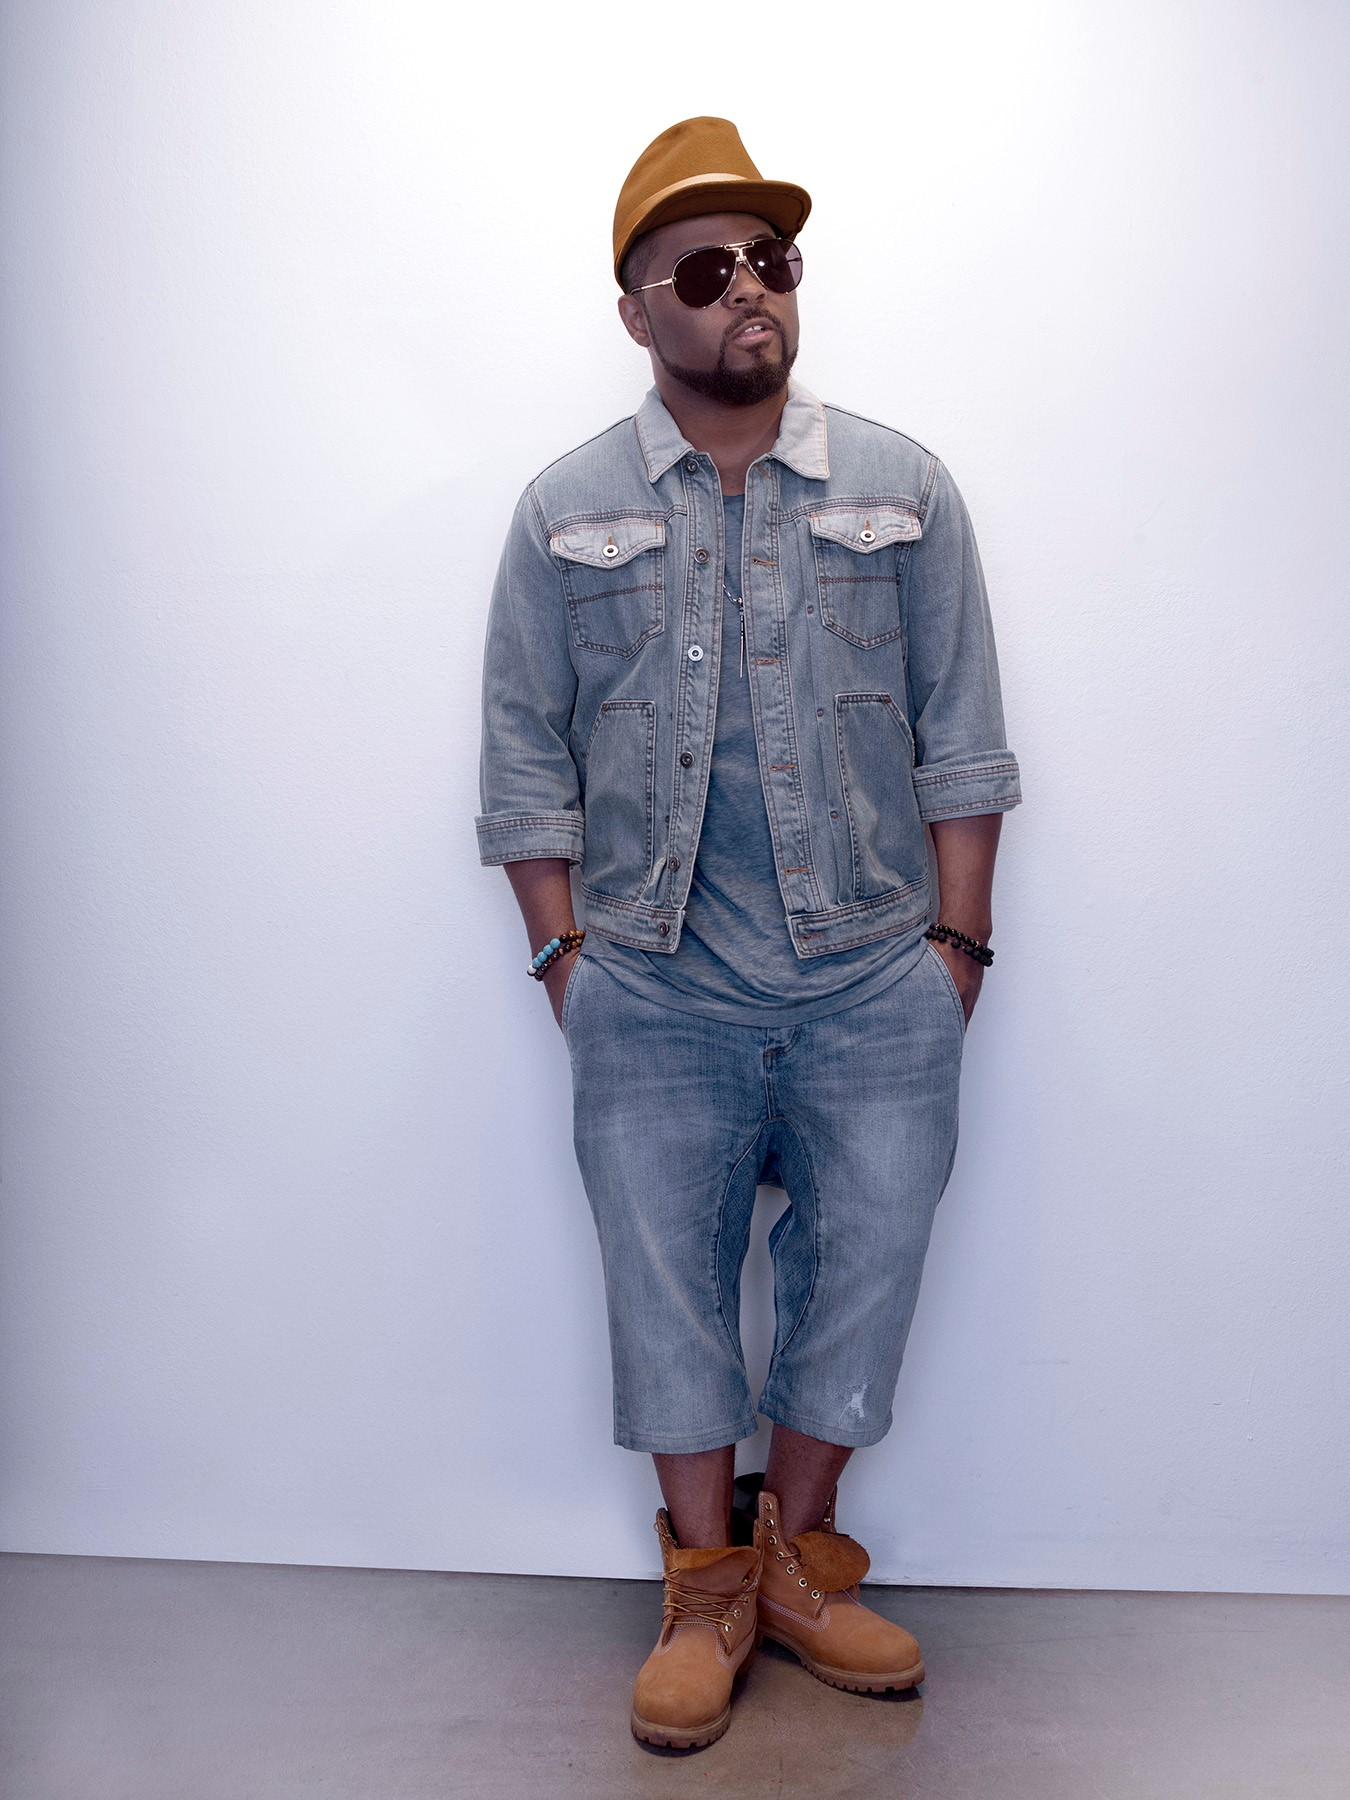 Musiq Soulchild And Donell Jones Tour